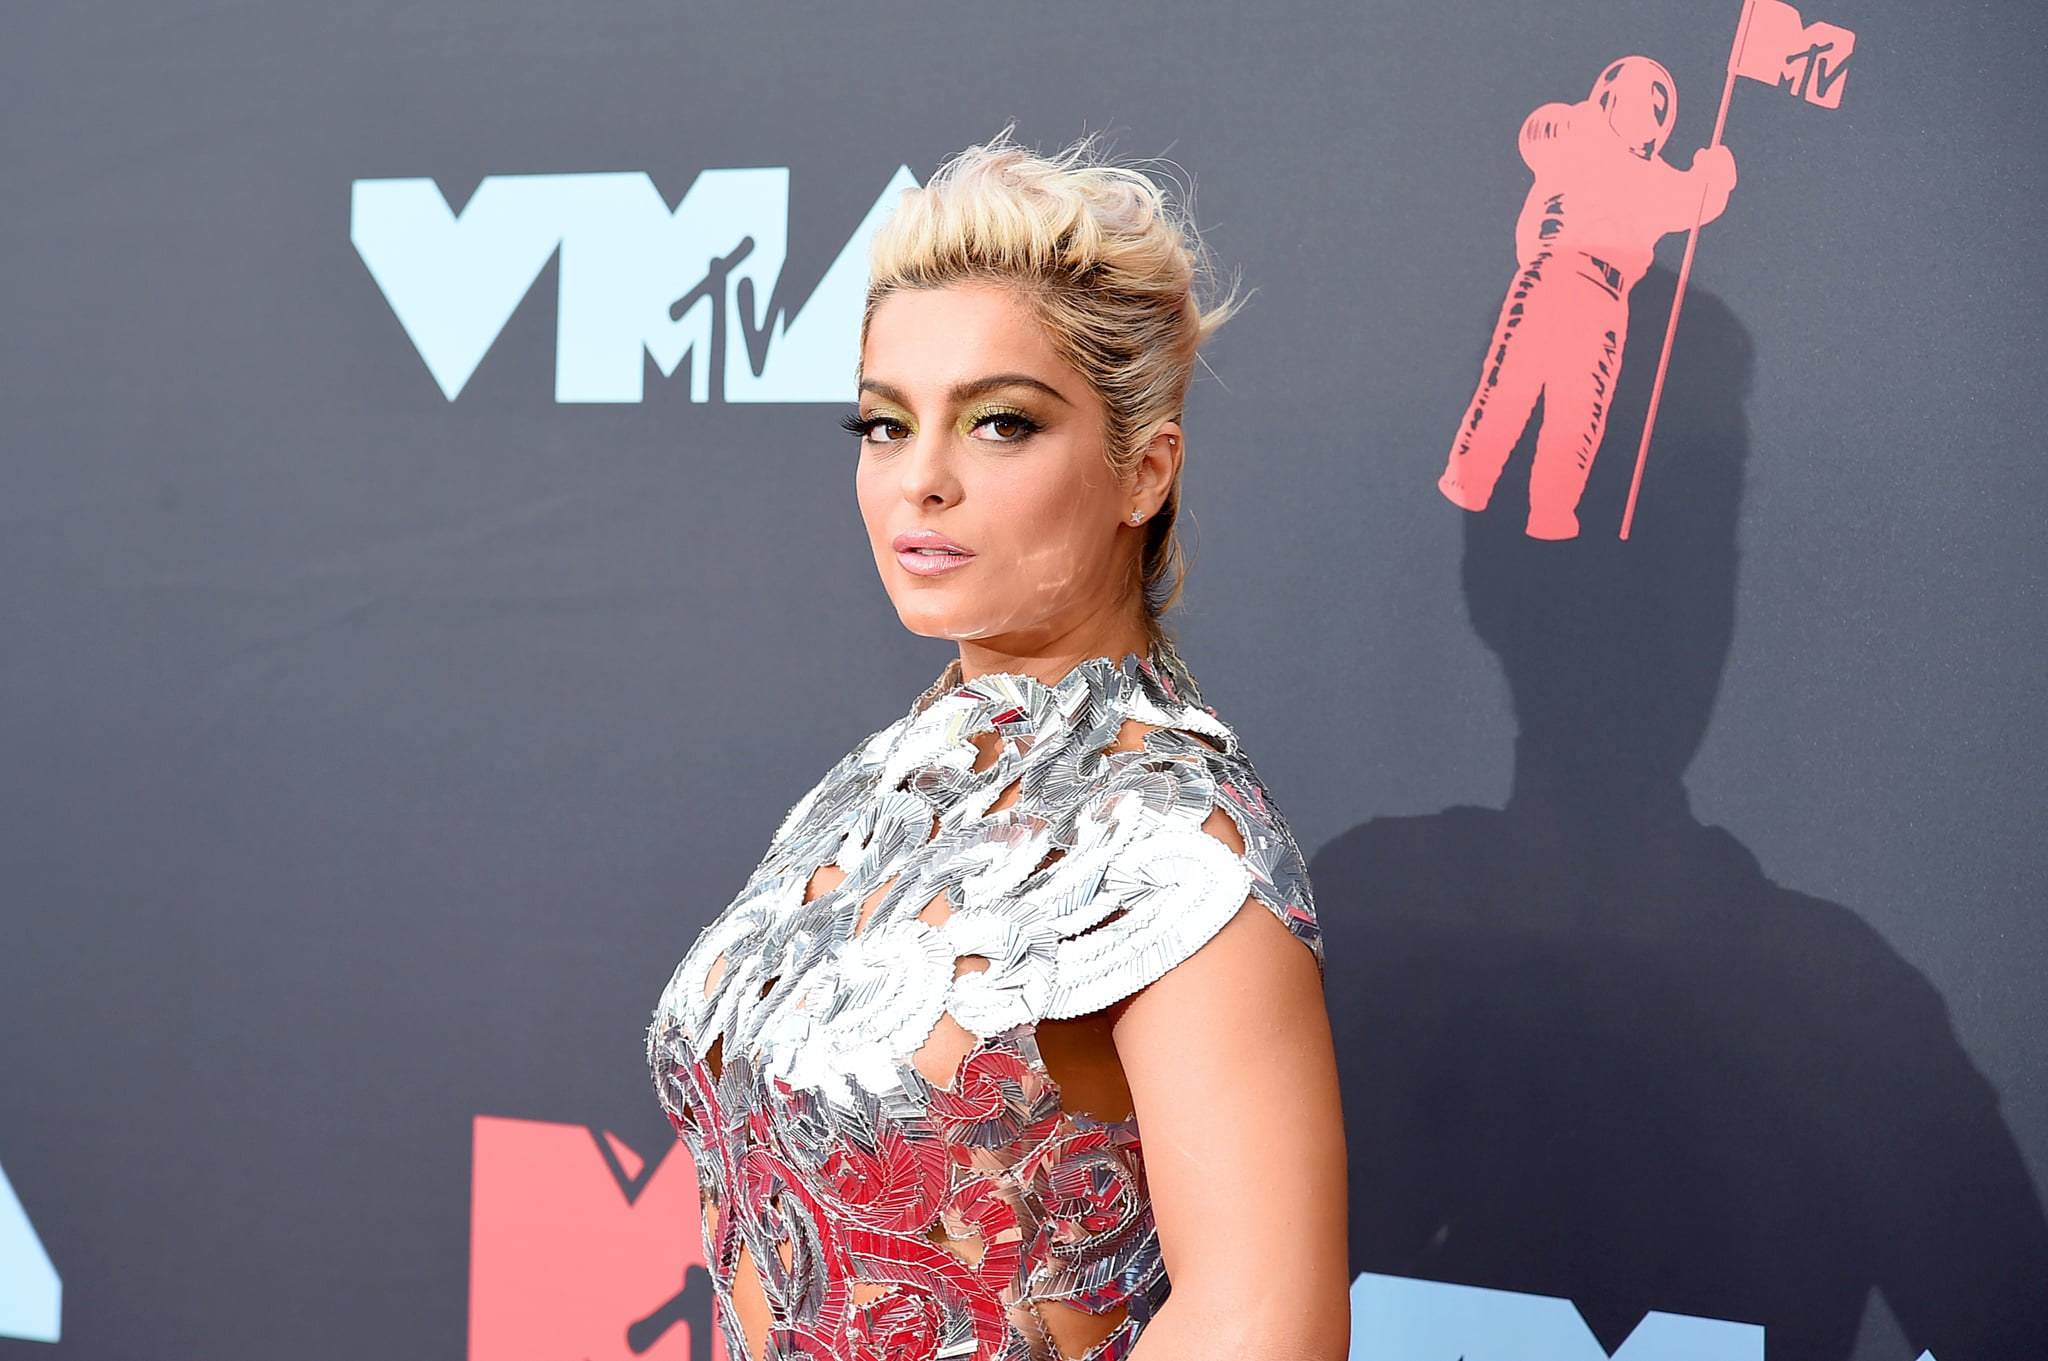 NEWARK, NEW JERSEY - AUGUST 26: Bebe Rexha attends the 2019 MTV Video Music Awards at Prudential Centre on August 26, 2019 in Newark, New Jersey. (Photo by Jamie McCarthy/Getty Images for MTV)